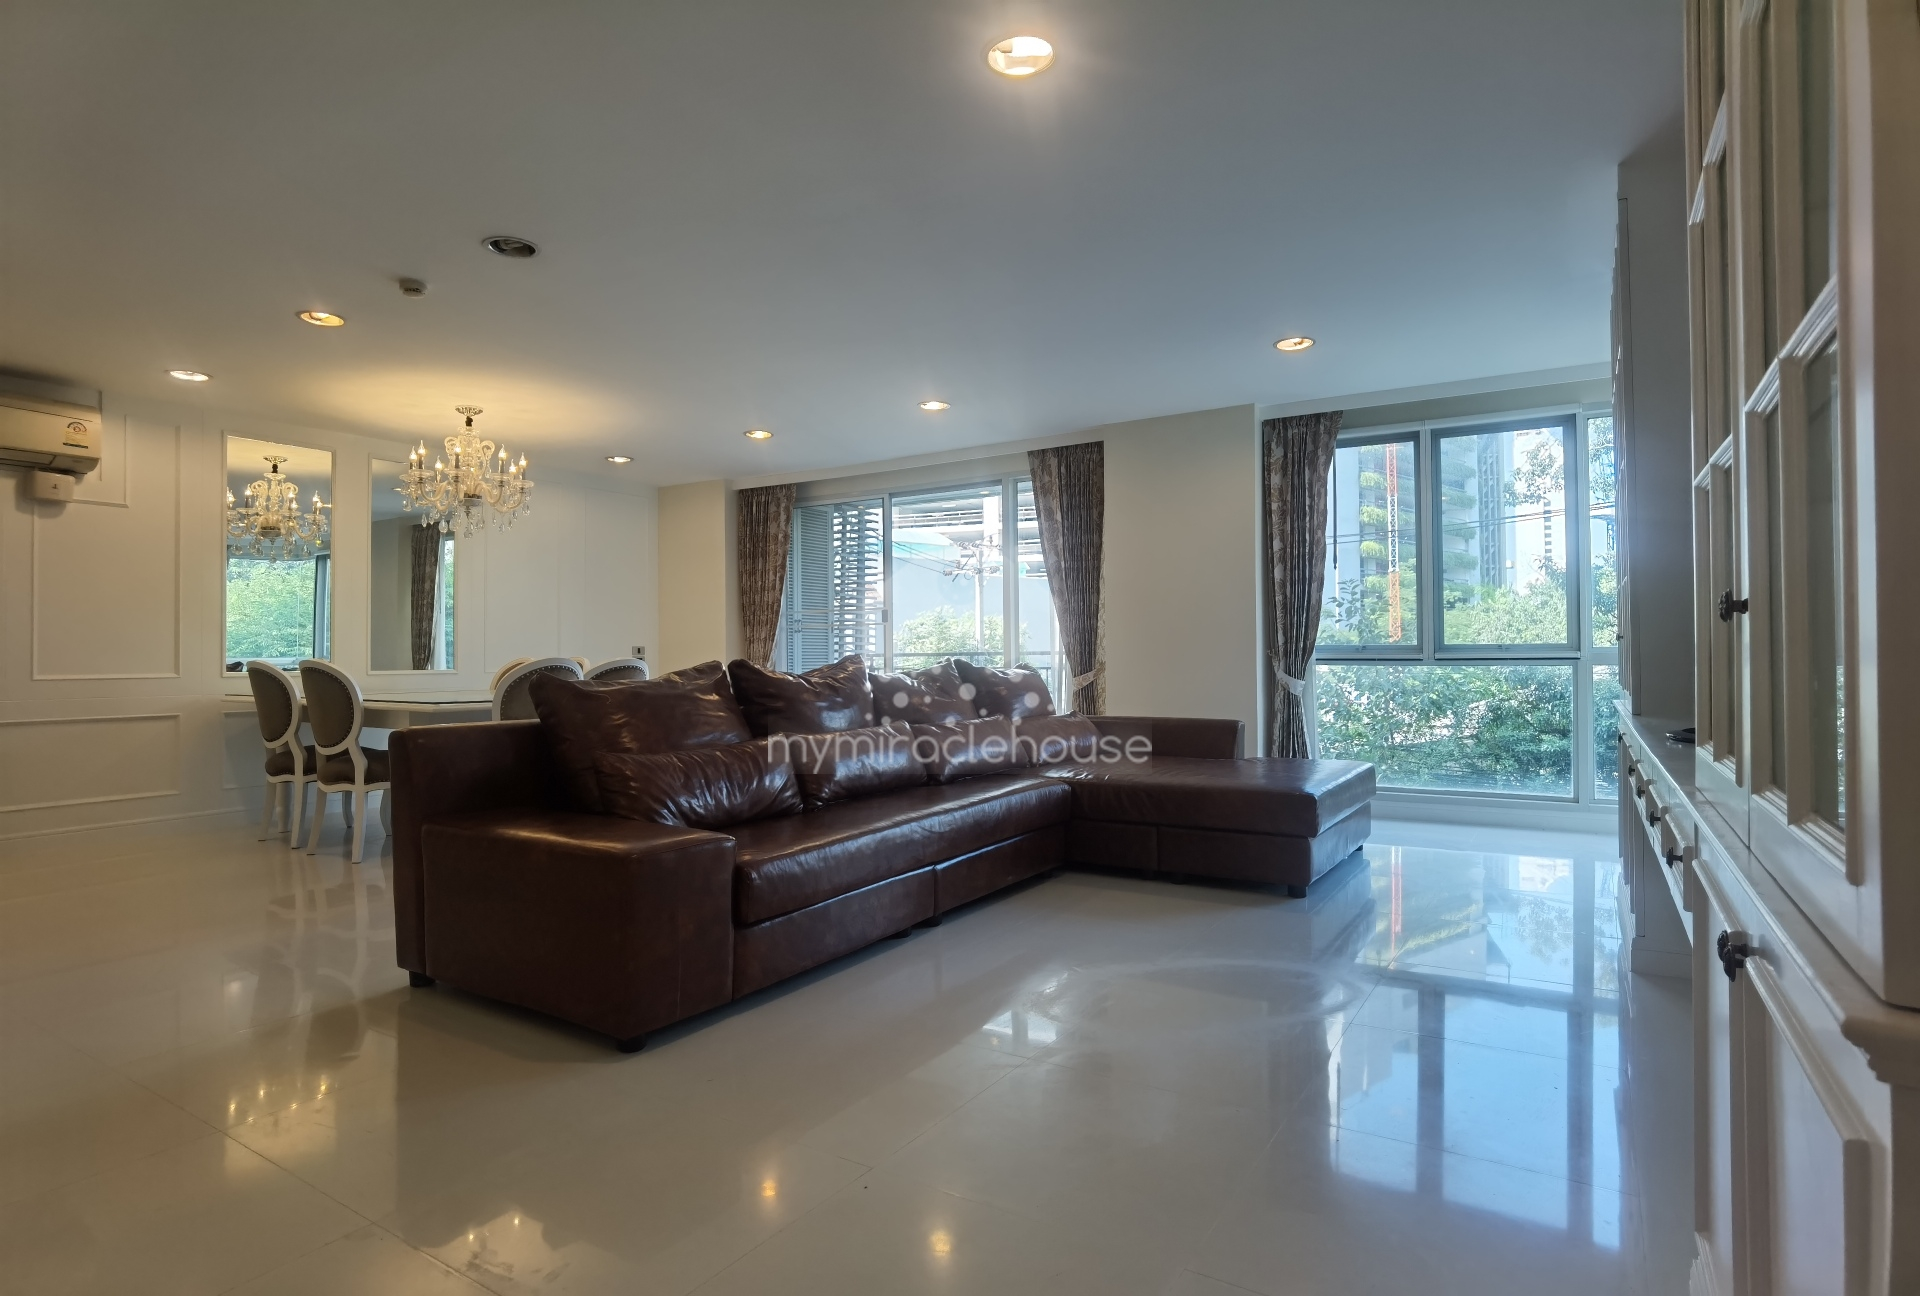 3 bedrooms for rent walking distance to Benjasiri Park and BTS Phrom Phong.